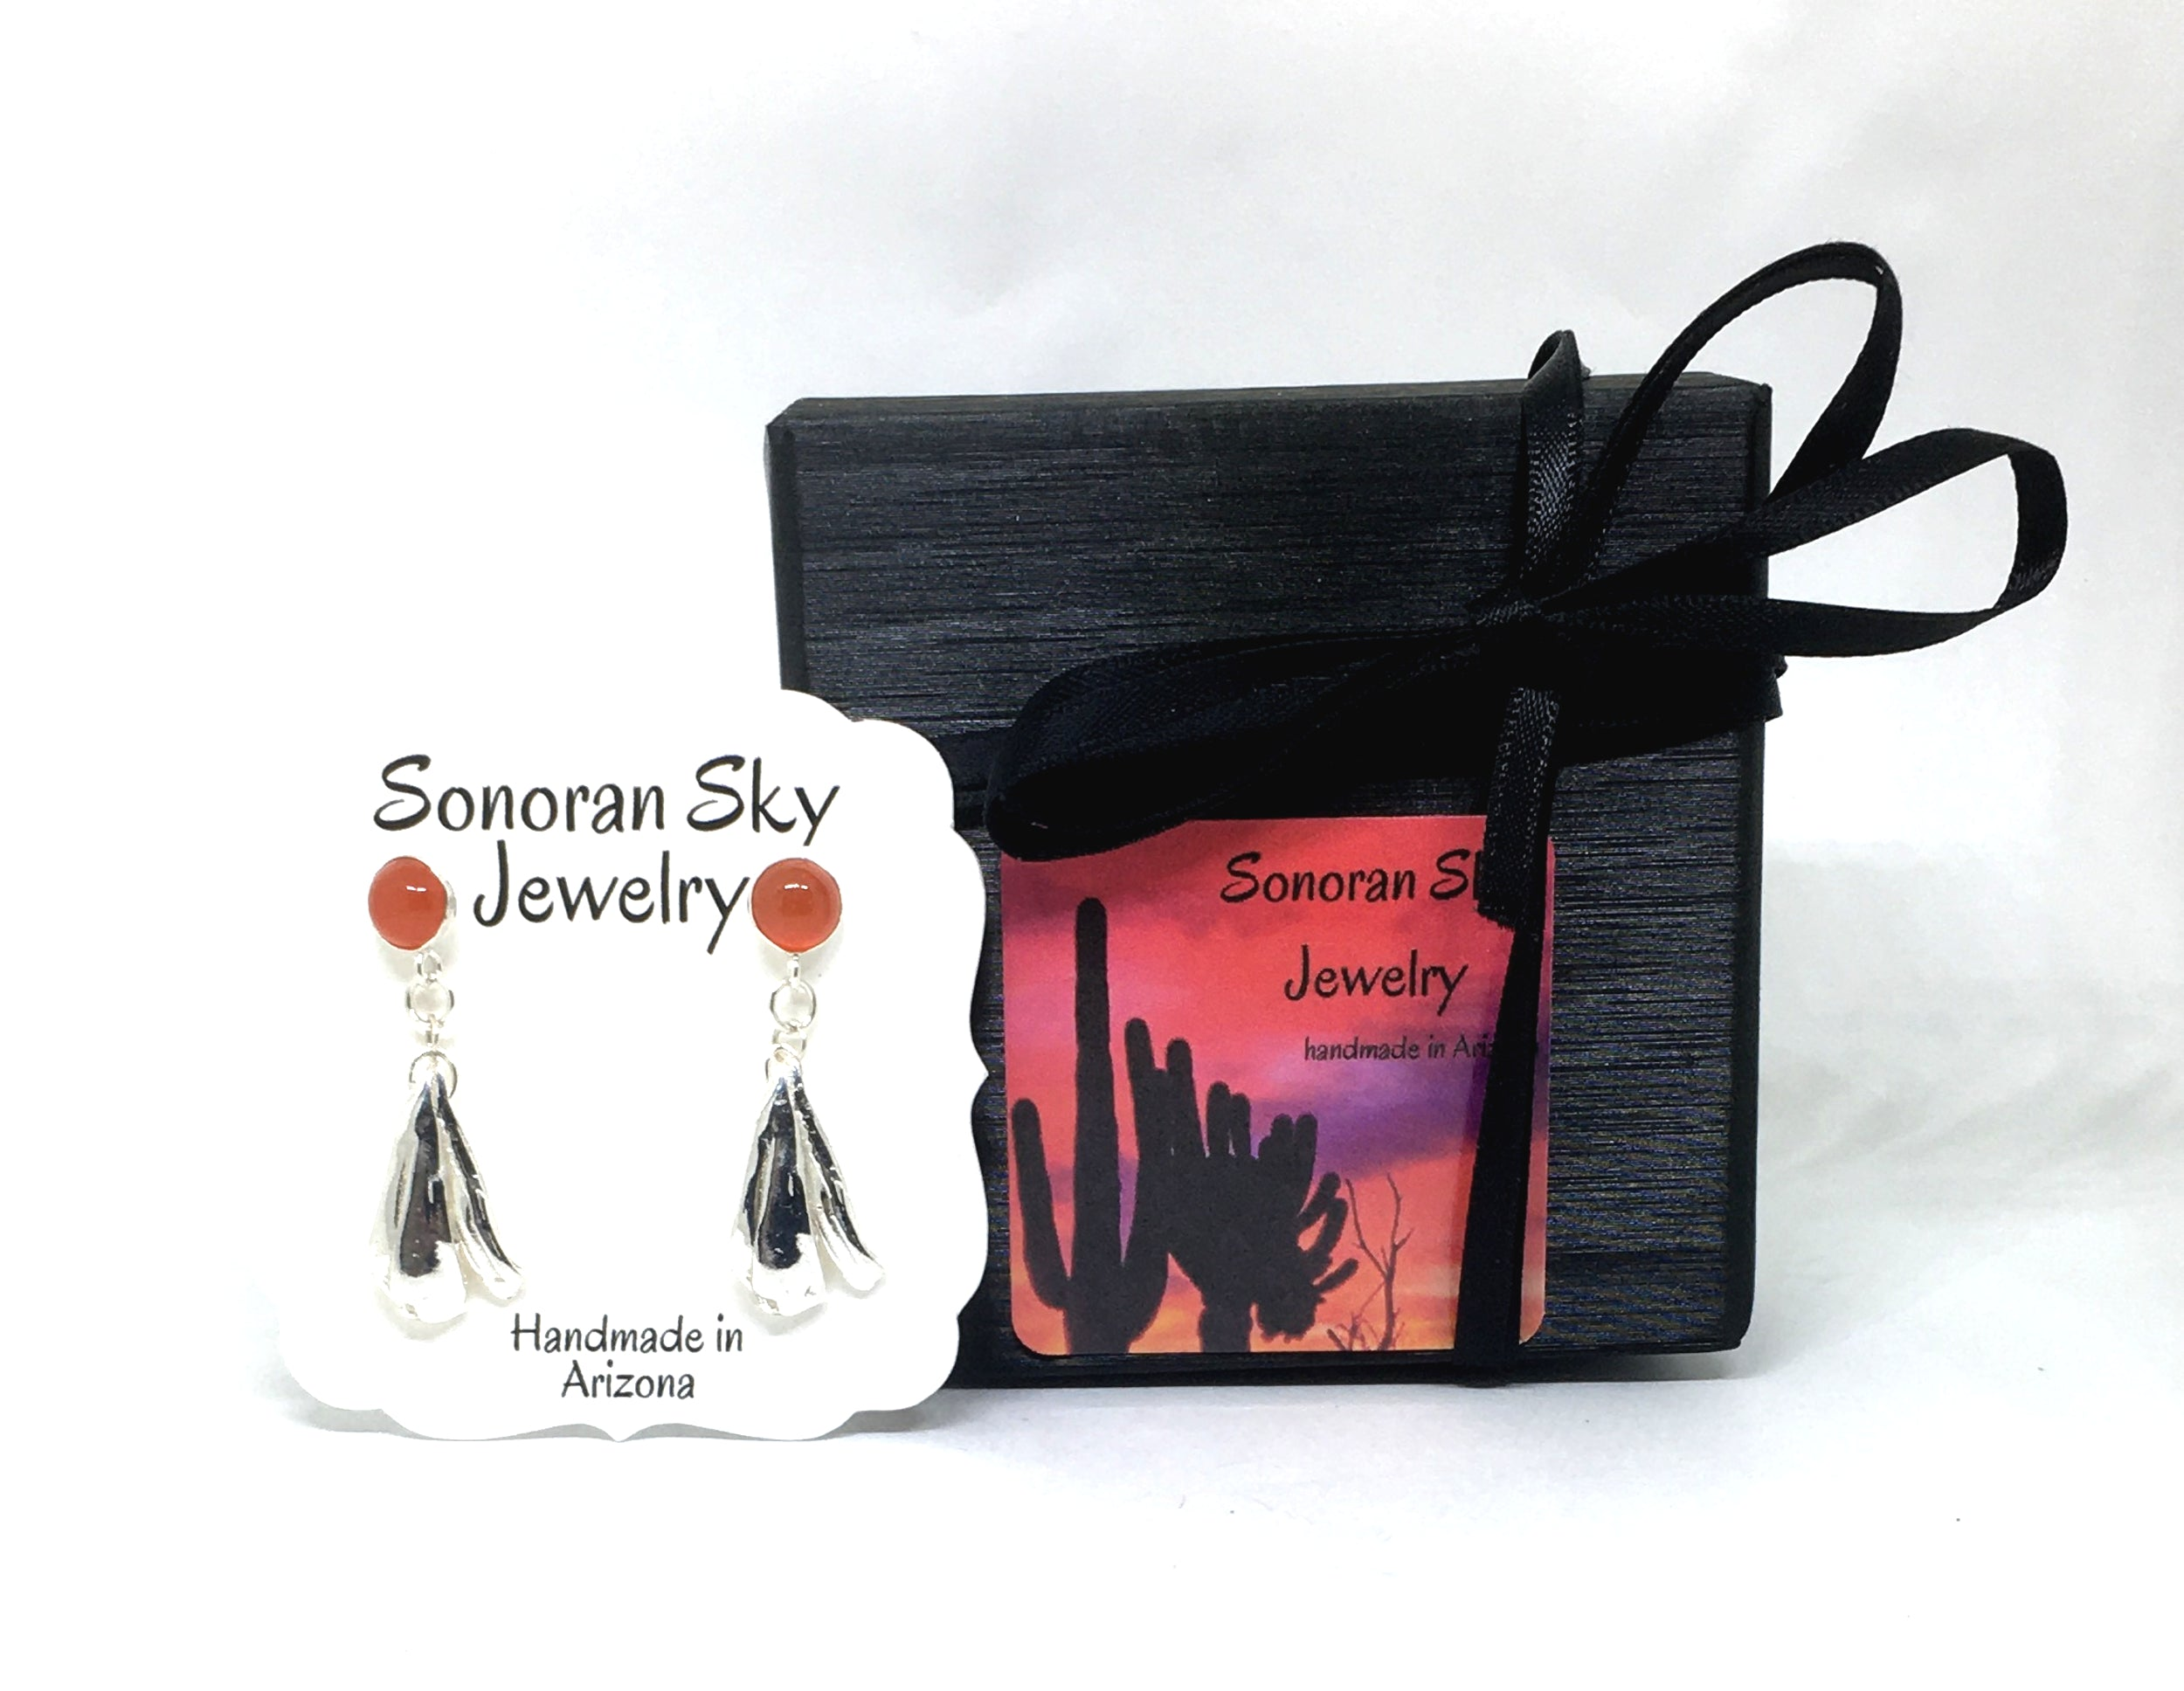 Your earrings will arrive in Sonoran Sky Jewelry gift packaging